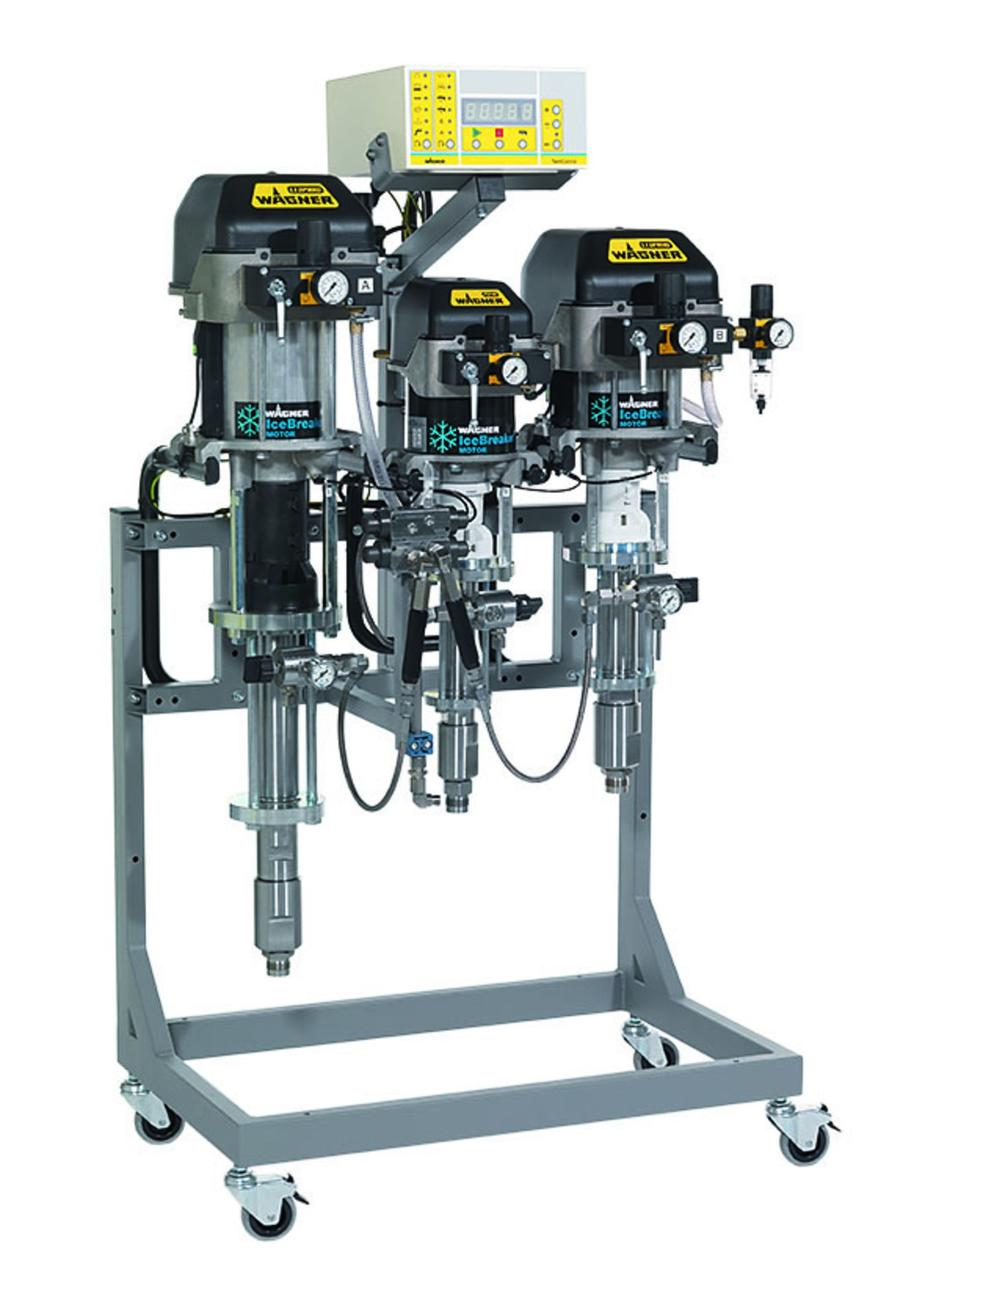 TwinControl 35-150/35-70 Electronic mixing and dosing system